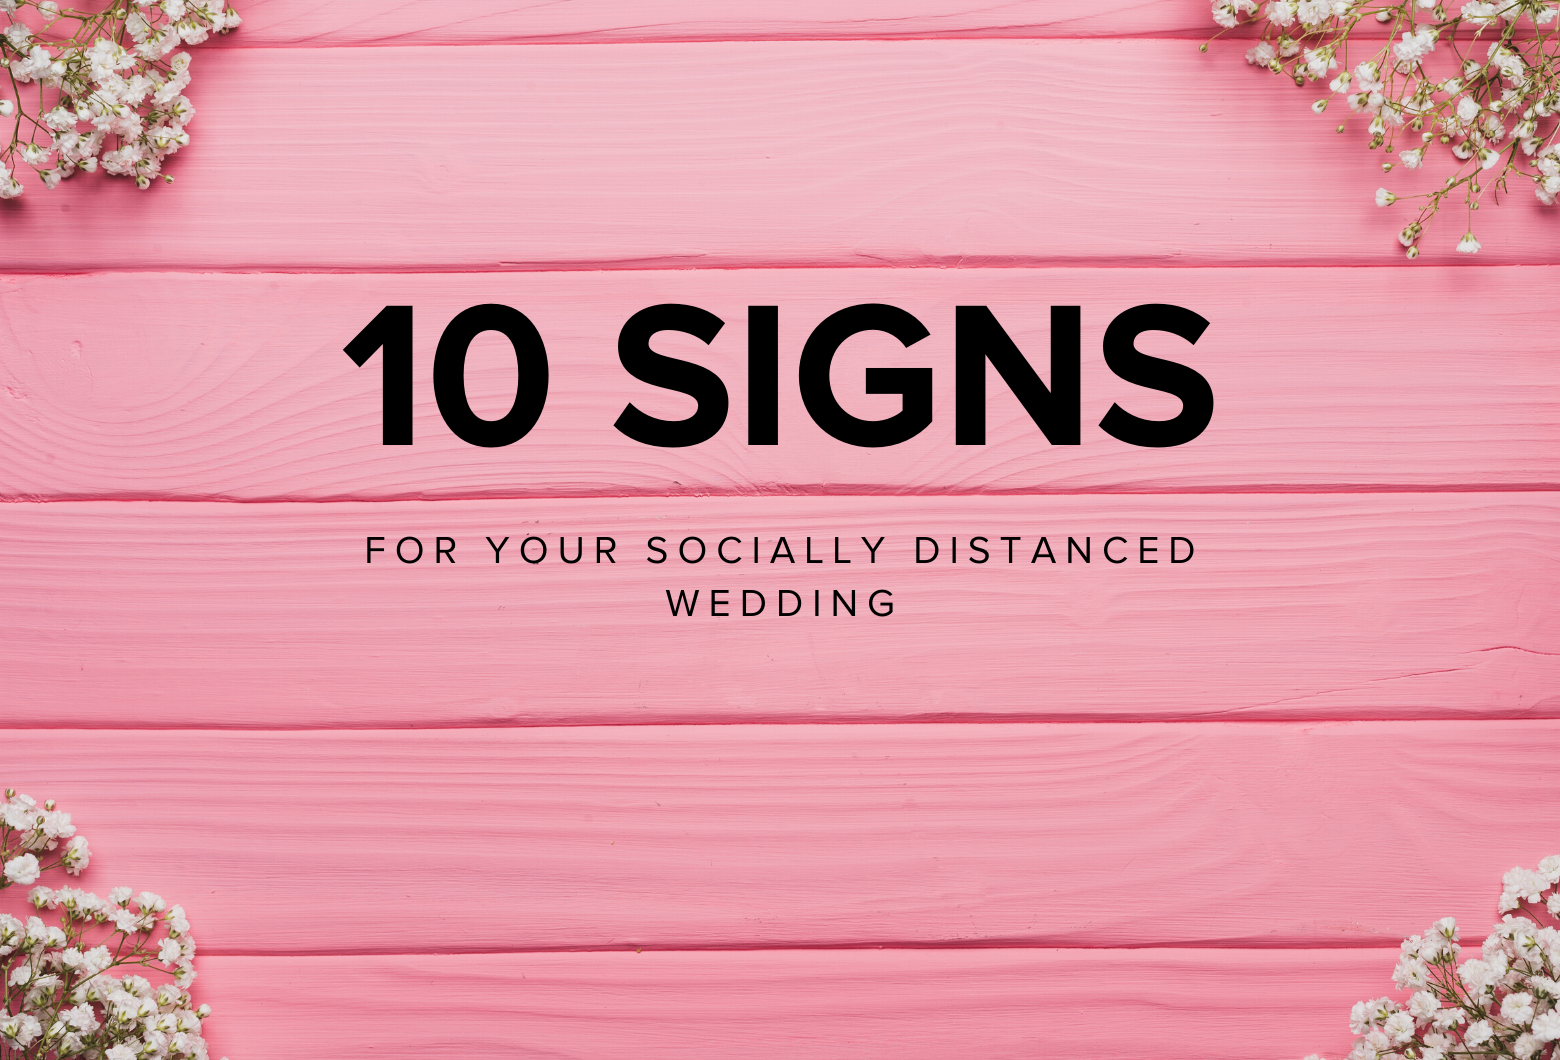 Signs for Socially Distanced Wedding